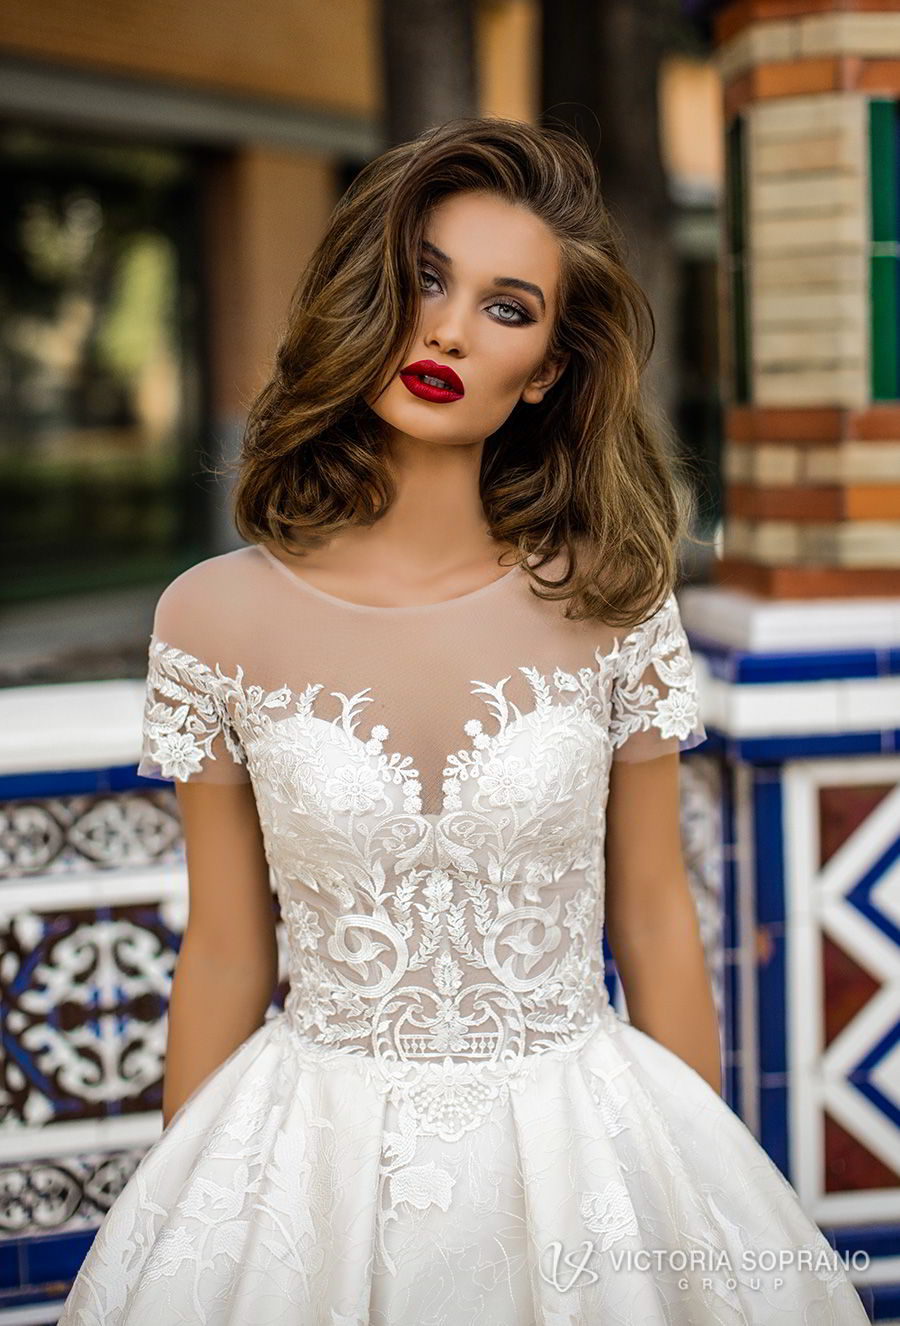 victoria soprano 2018 bridal short sleeves illusion jewel sweetheart neckline heavily embellished bodice romantic a line wedding dress with pockets sheer lace back chapel train (vivian) zv